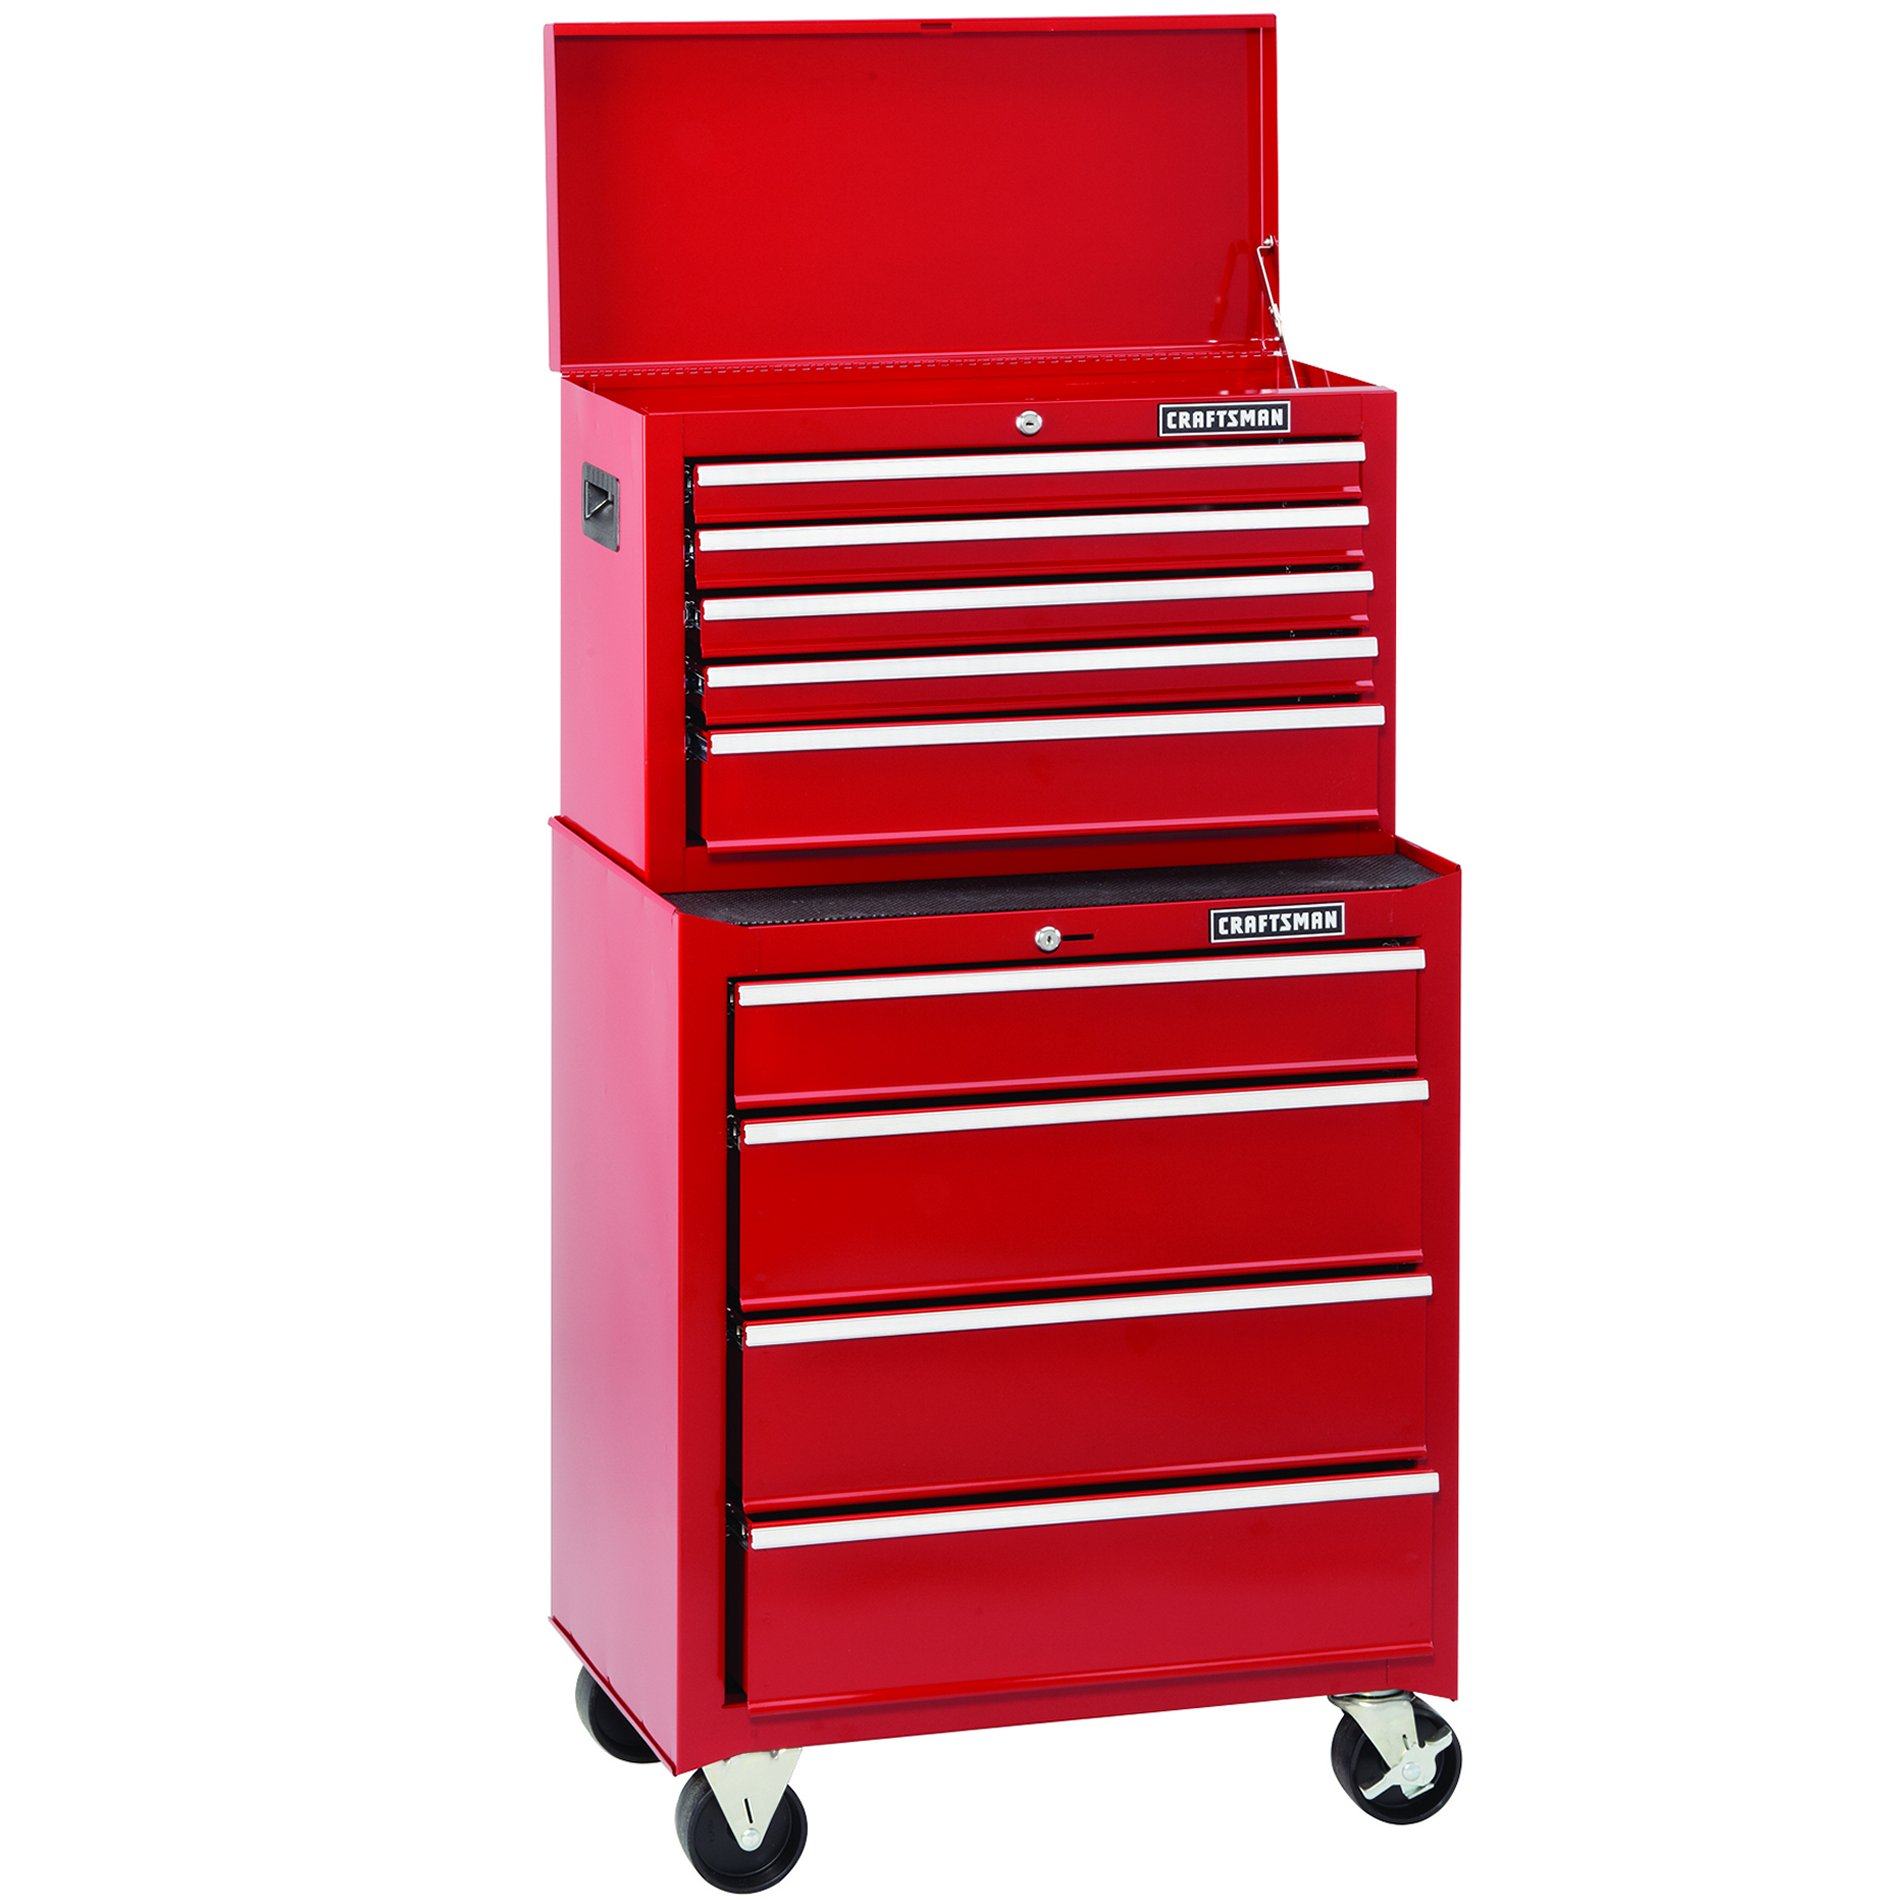 Craftsman 26 In. 5-Drawer Standard Duty Ball Bearing Top Chest - Red